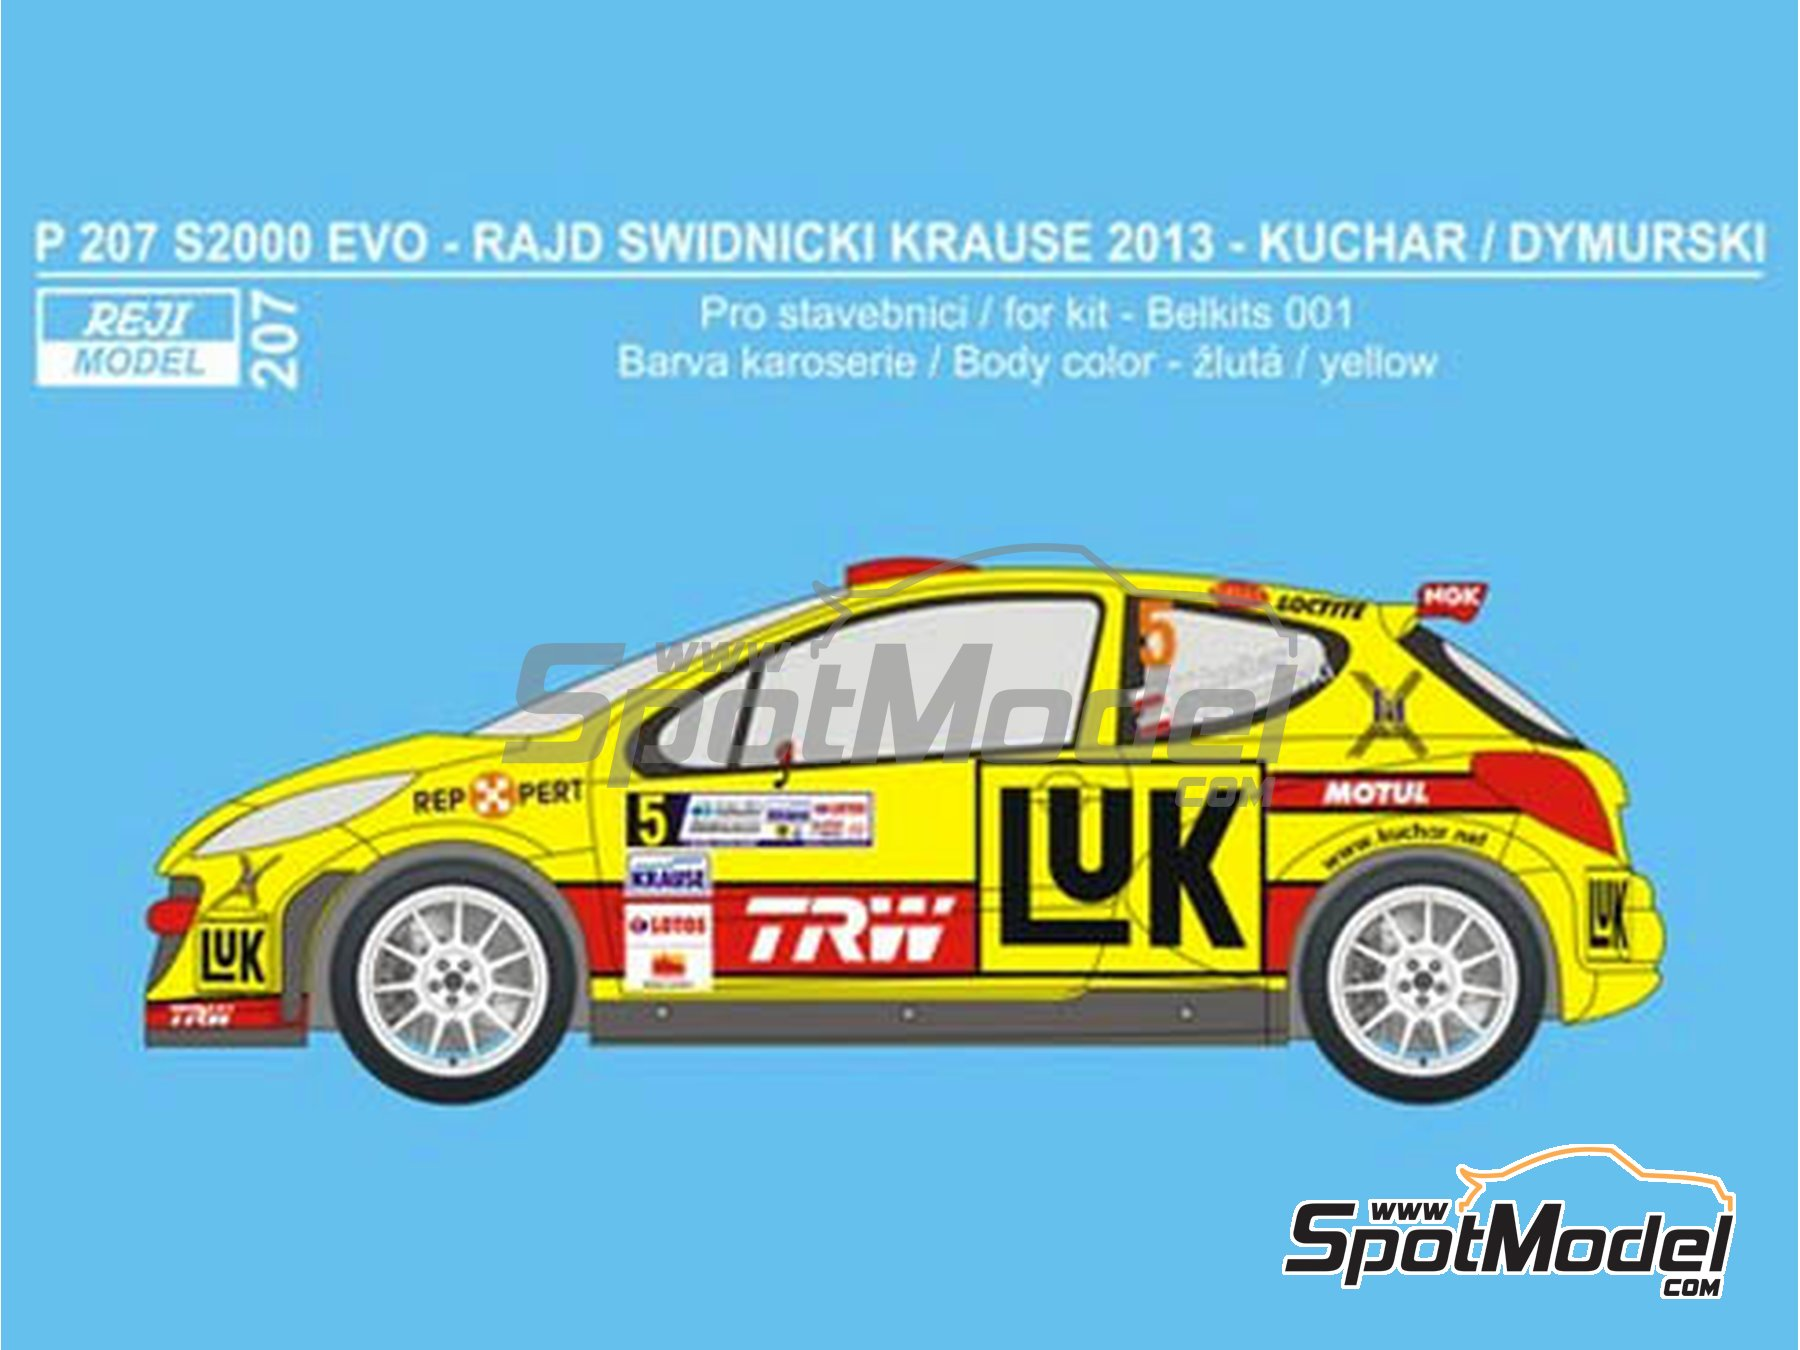 Image 1: Peugeot 207 S2000 Evo Luk - Swidnicki Krause Rally 2013 | Marking / livery in 1/24 scale manufactured by Reji Model (ref. REJI-207)